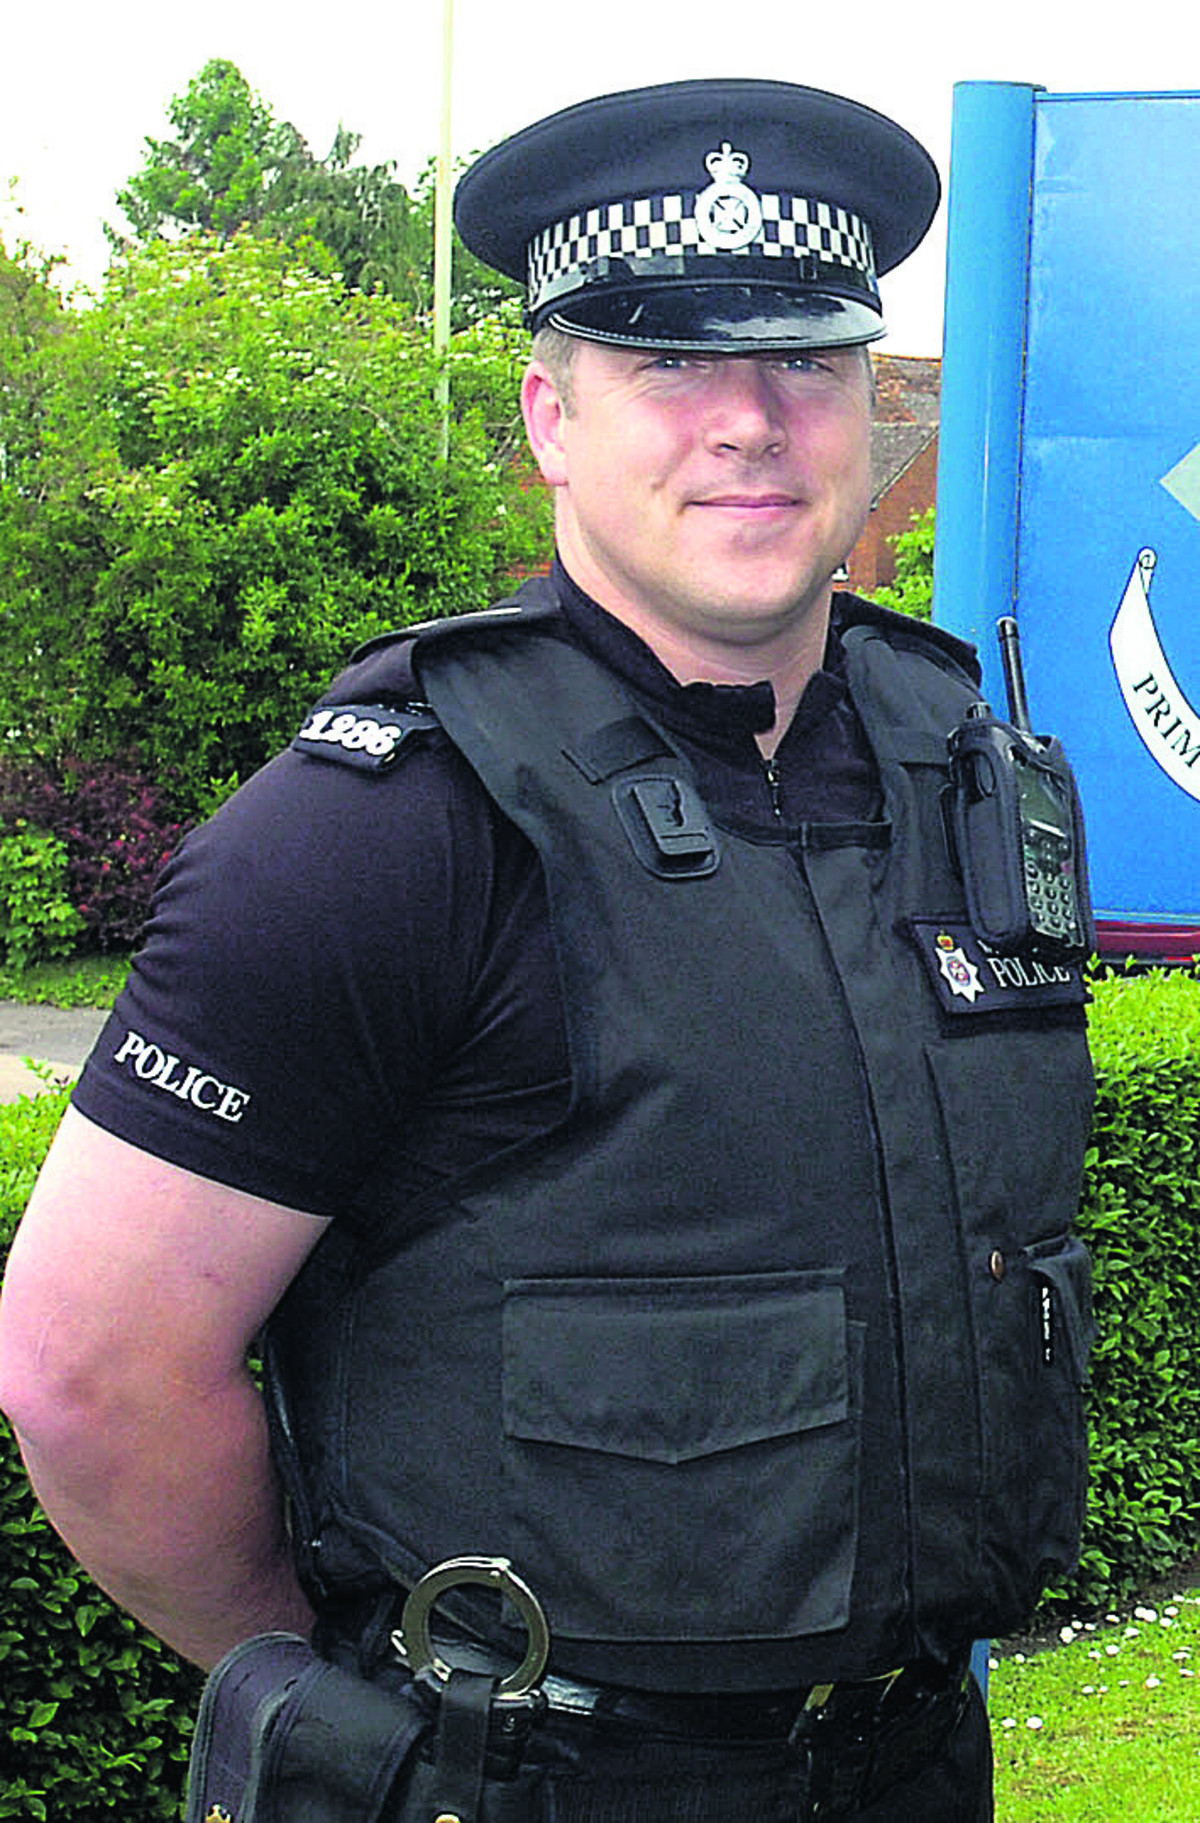 Sgt Barry Reed and his team put out safety messages on social media as part of Operation Dasher